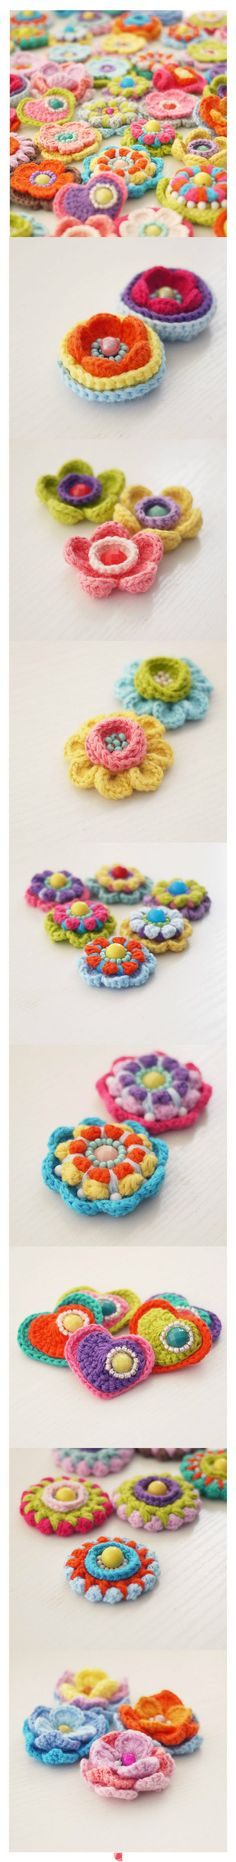 cute crocheted flowers and hearts!